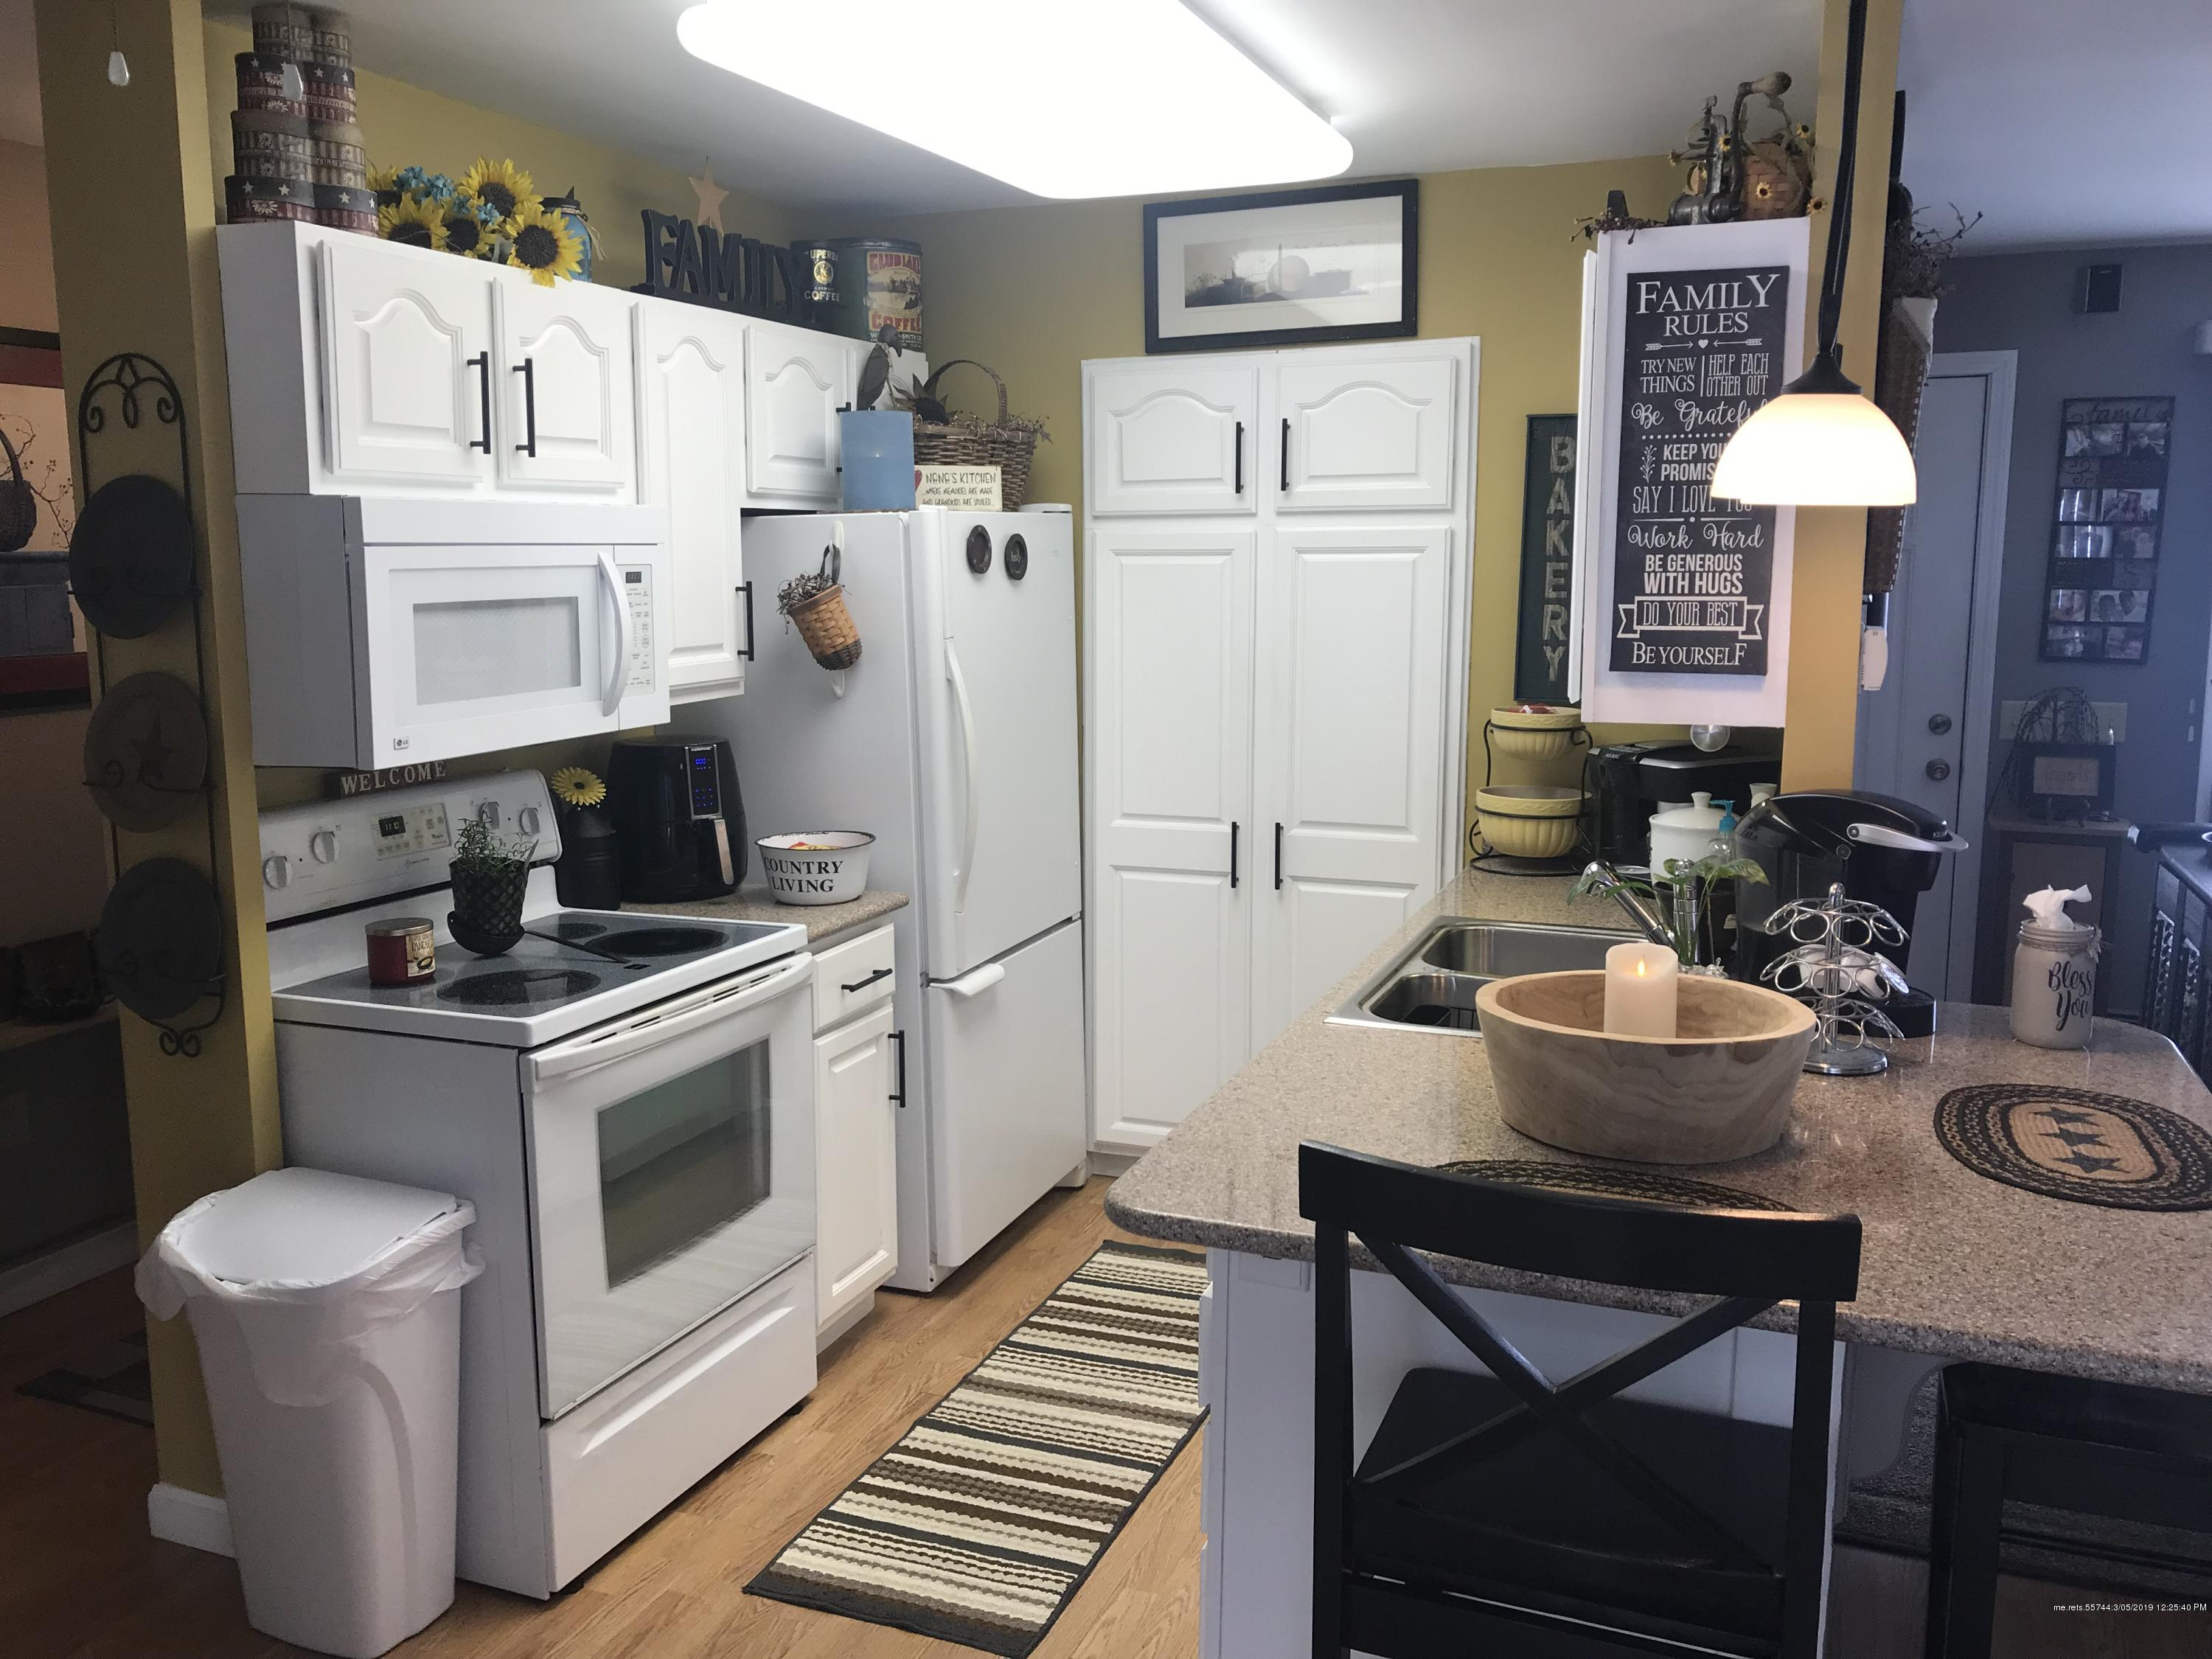 Take a Look at These Beautiful Country Kitchen Lewiston ...